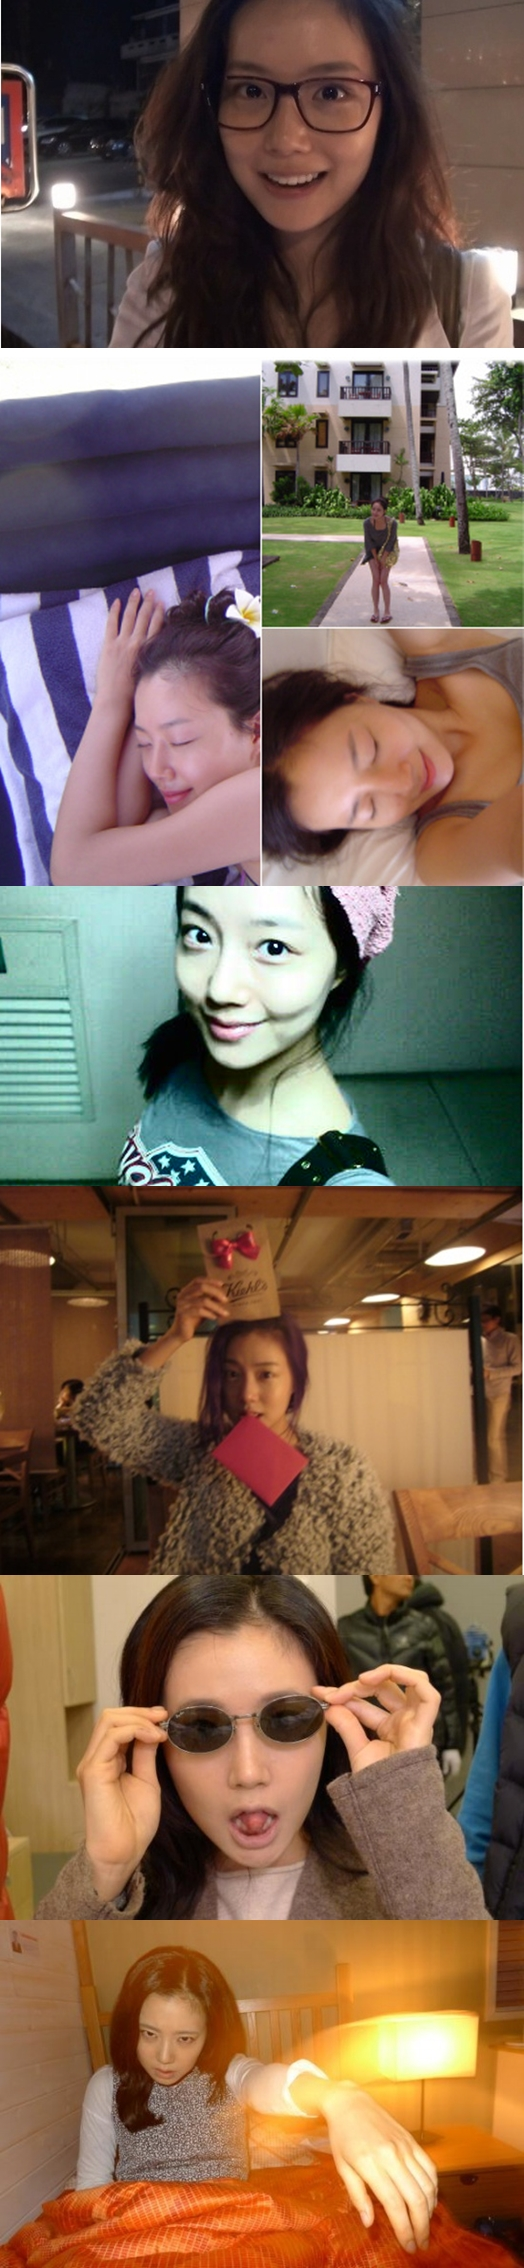 Moon chae won dating 2012 nfl. Dating for one night.